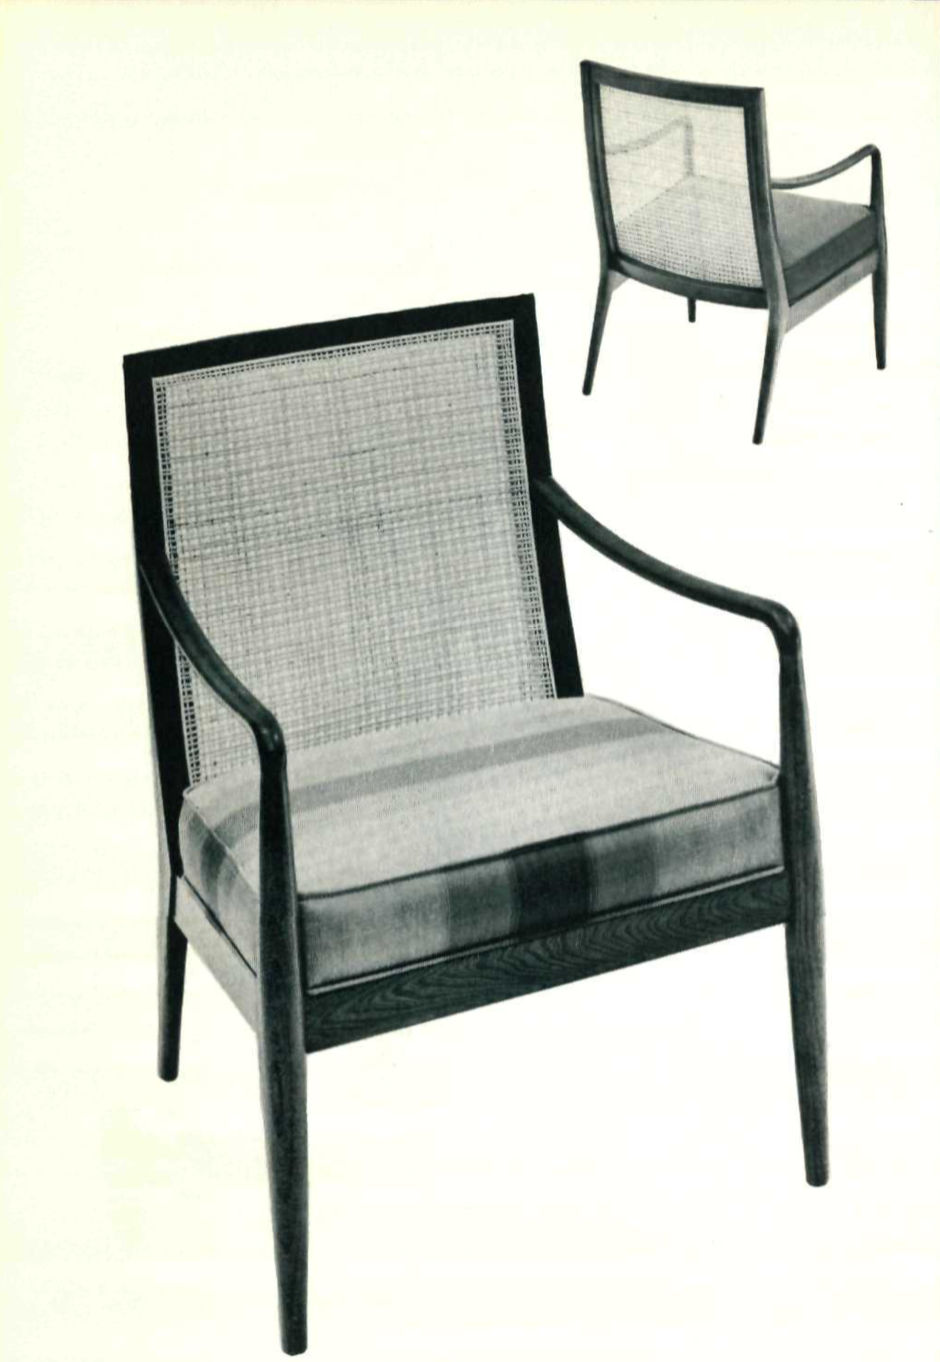 Lawrence Peabody Lounge Chair Model 918 for Nemschoff : Peabody Collection